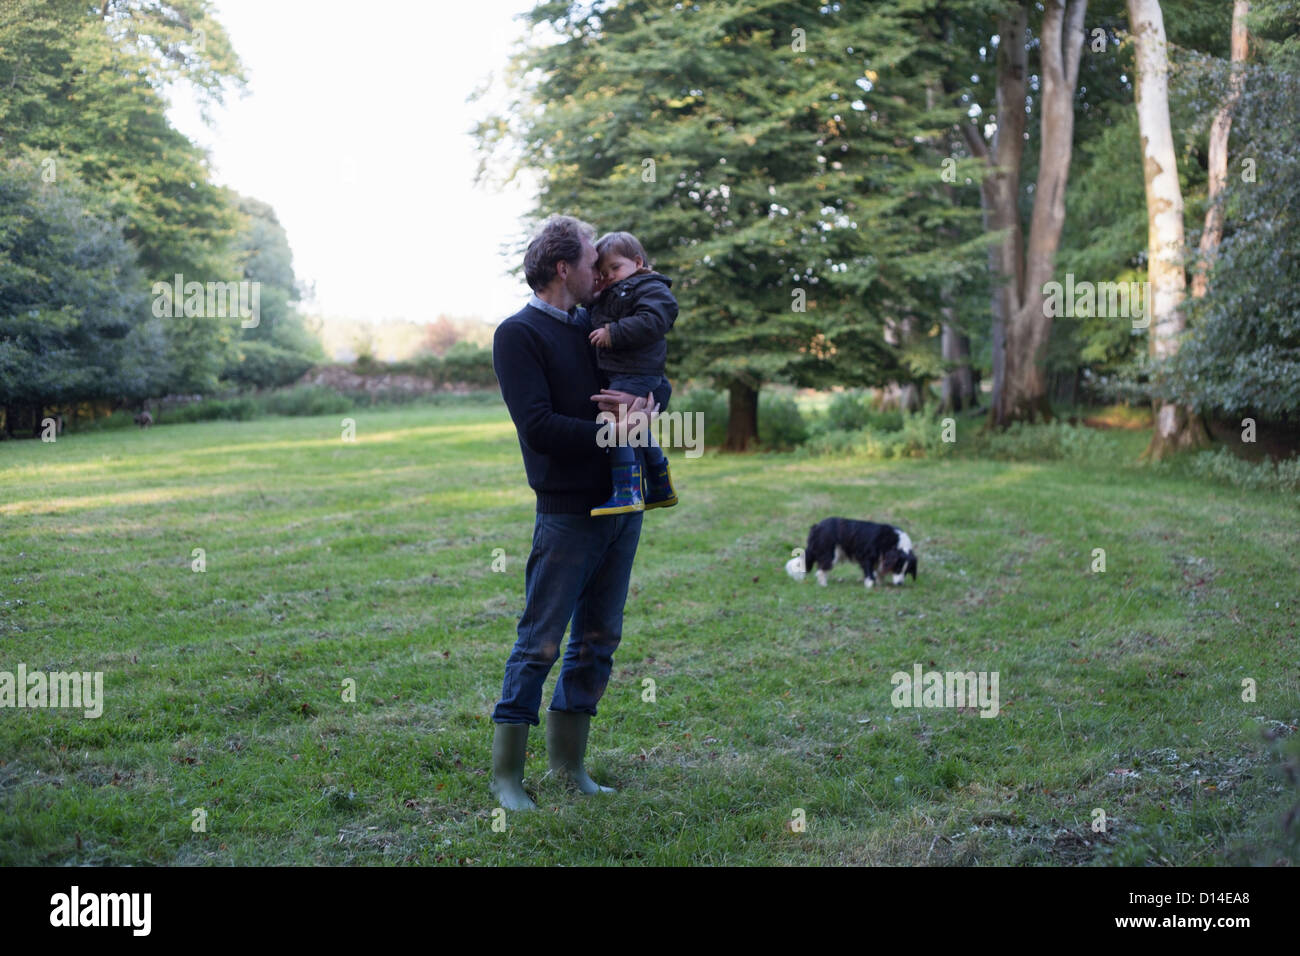 Father holding son in backyard - Stock Image